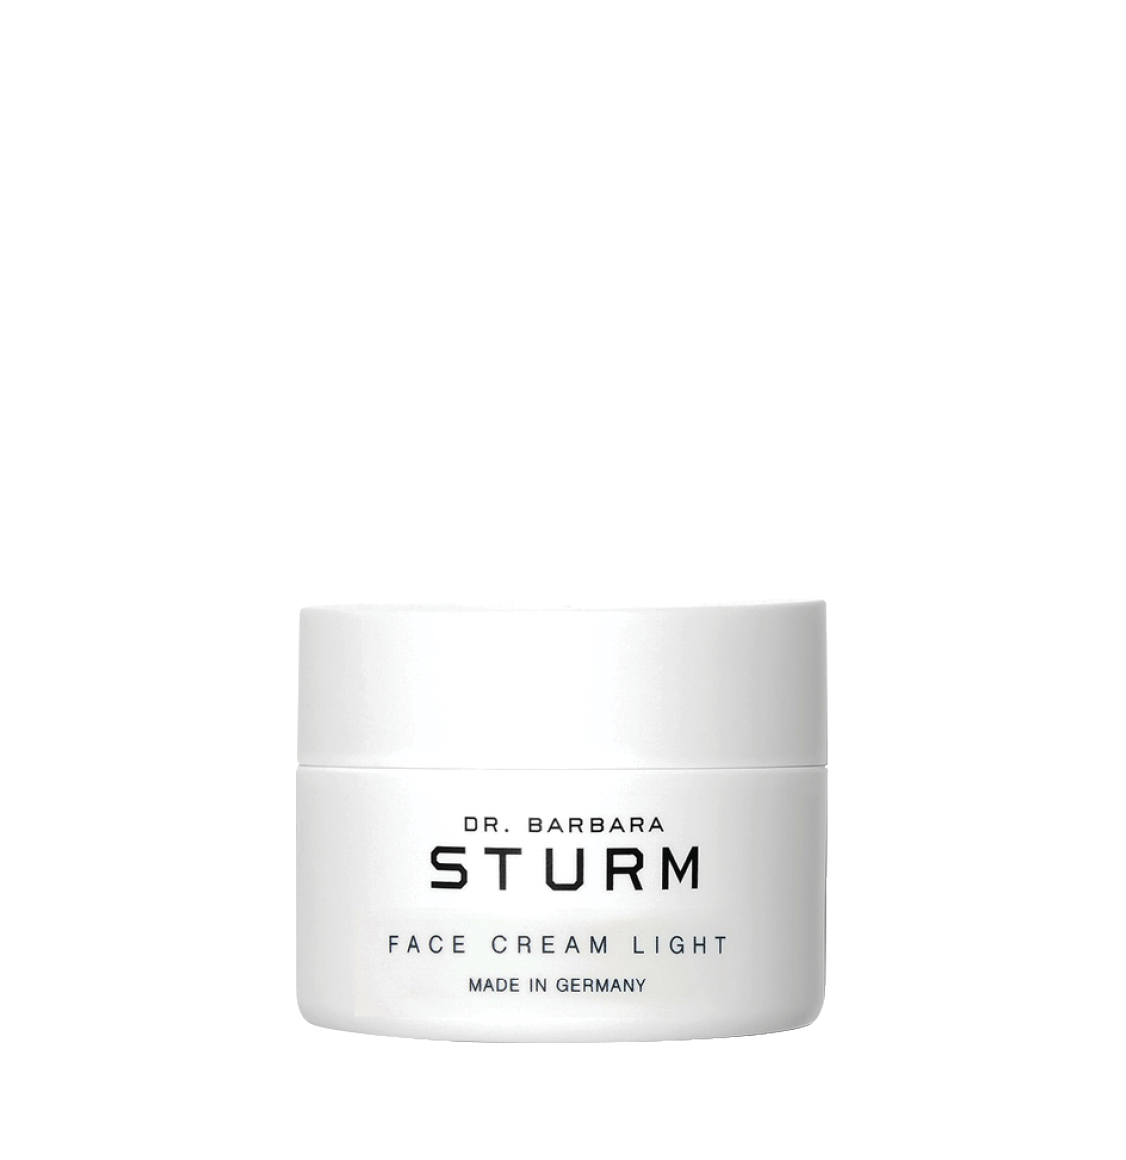 Dr. Barbara Sturm Face Cream Light 50ml